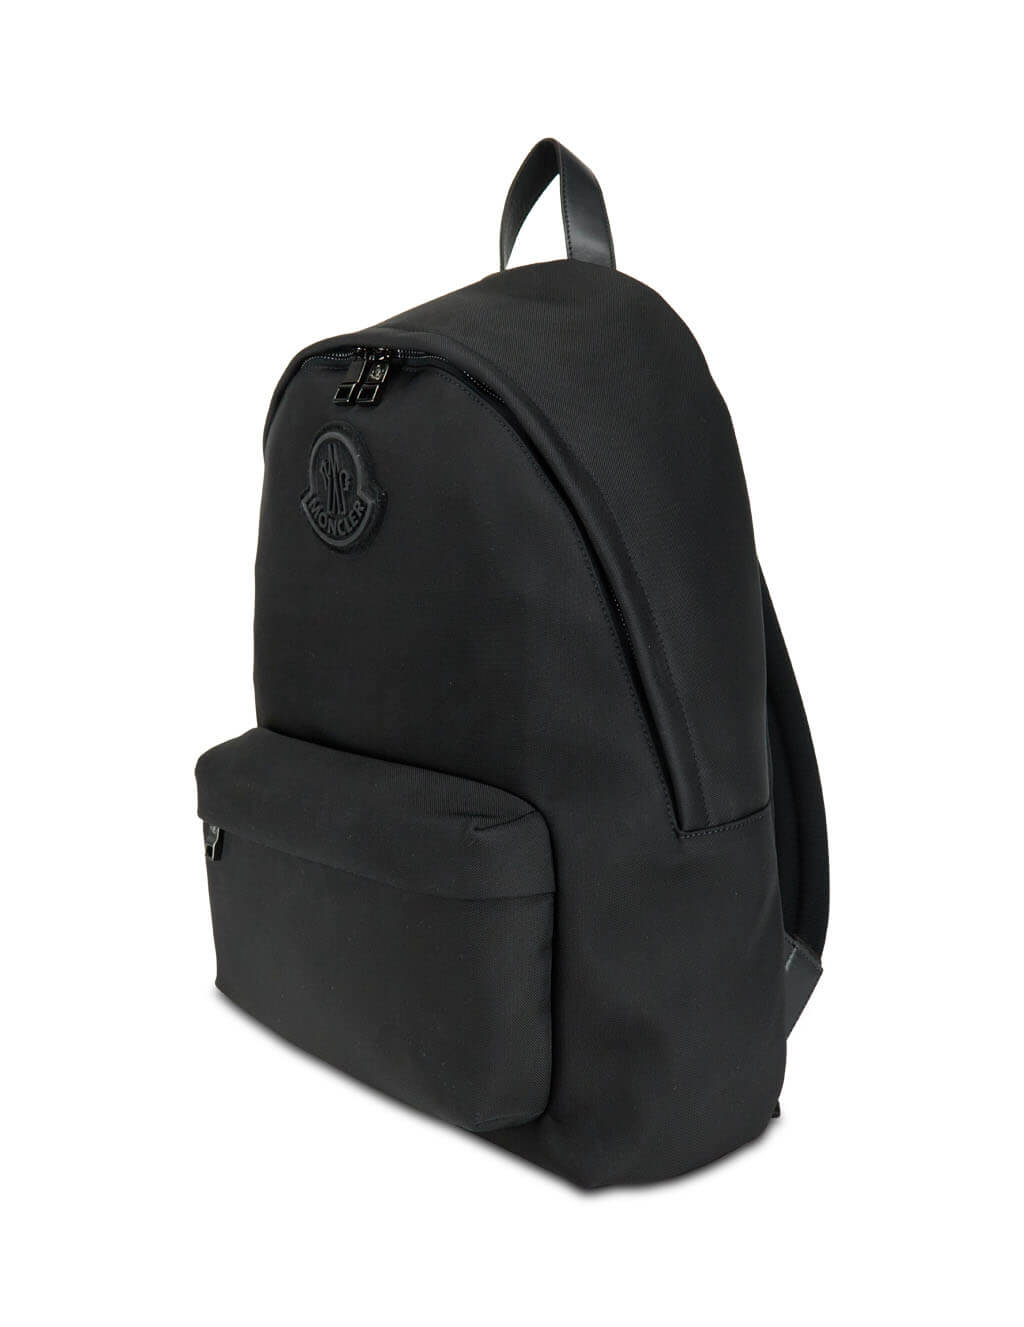 Moncler Men's Giulio Fashion Black Pierrick Backpack 09A5A7040002SAY999